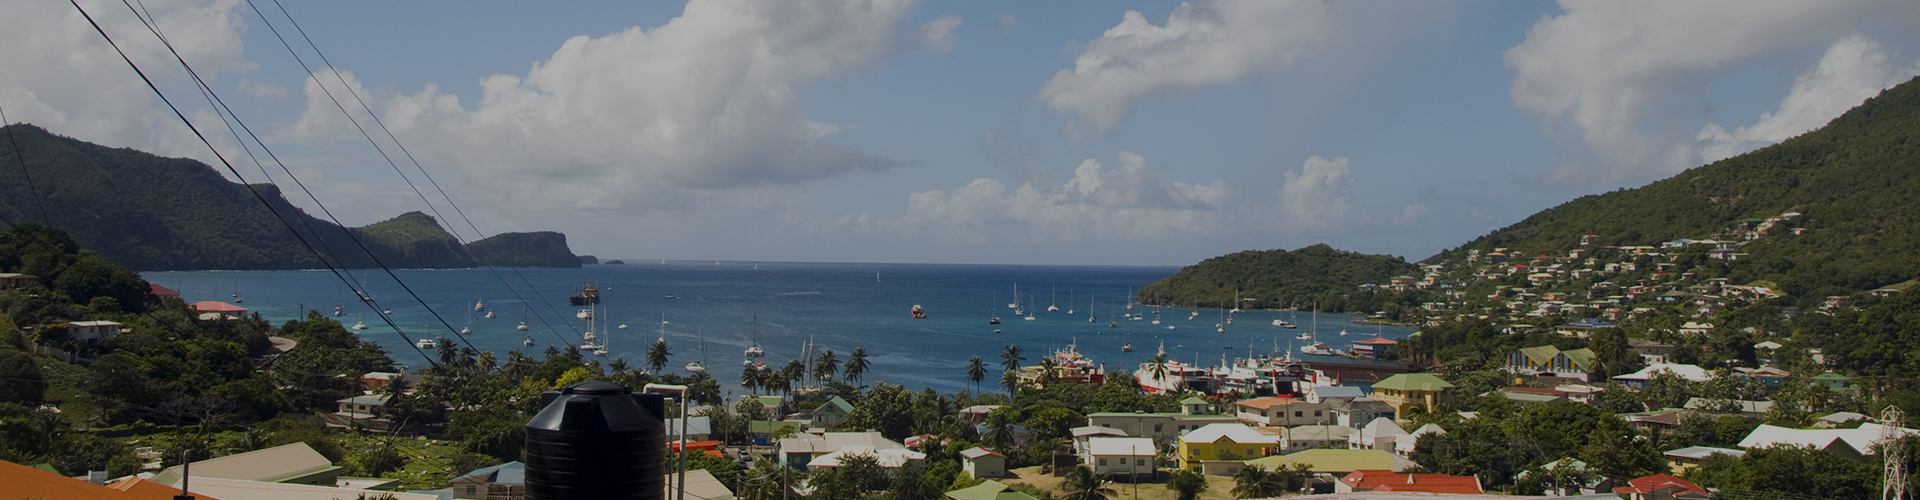 Landmark photograph of St. Vincent & Grenadines